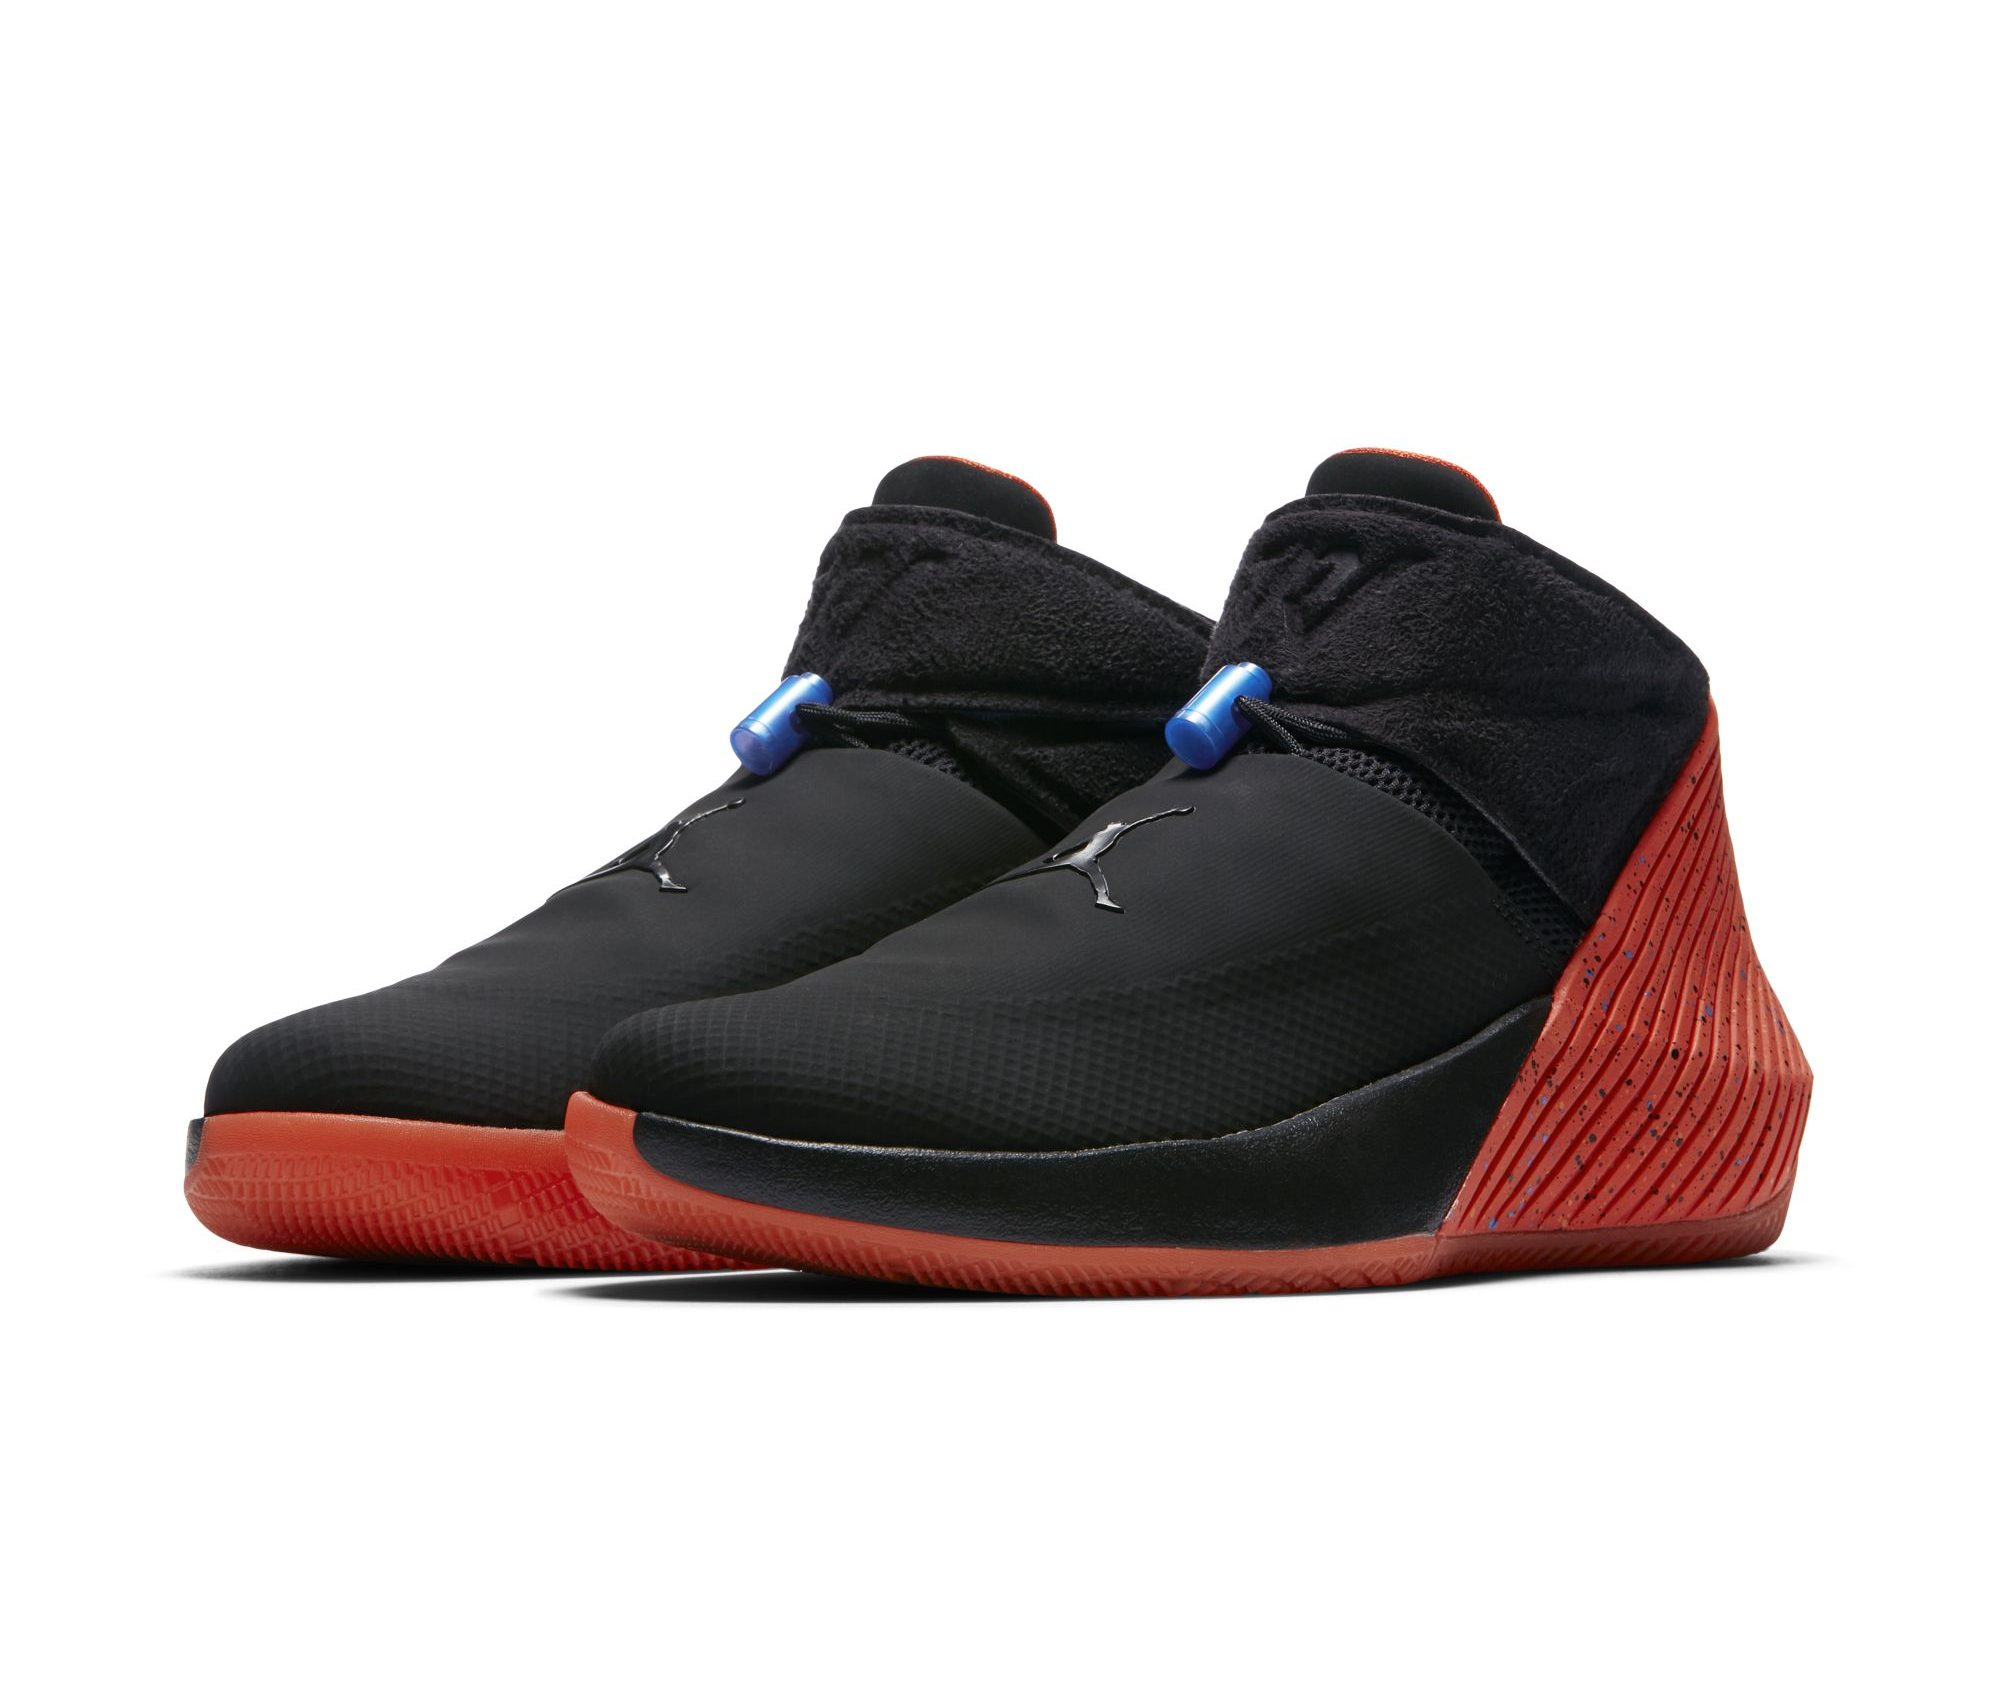 Jordan Why Not Zero.1 in Thunder's Away Colorway Dropping Soon1